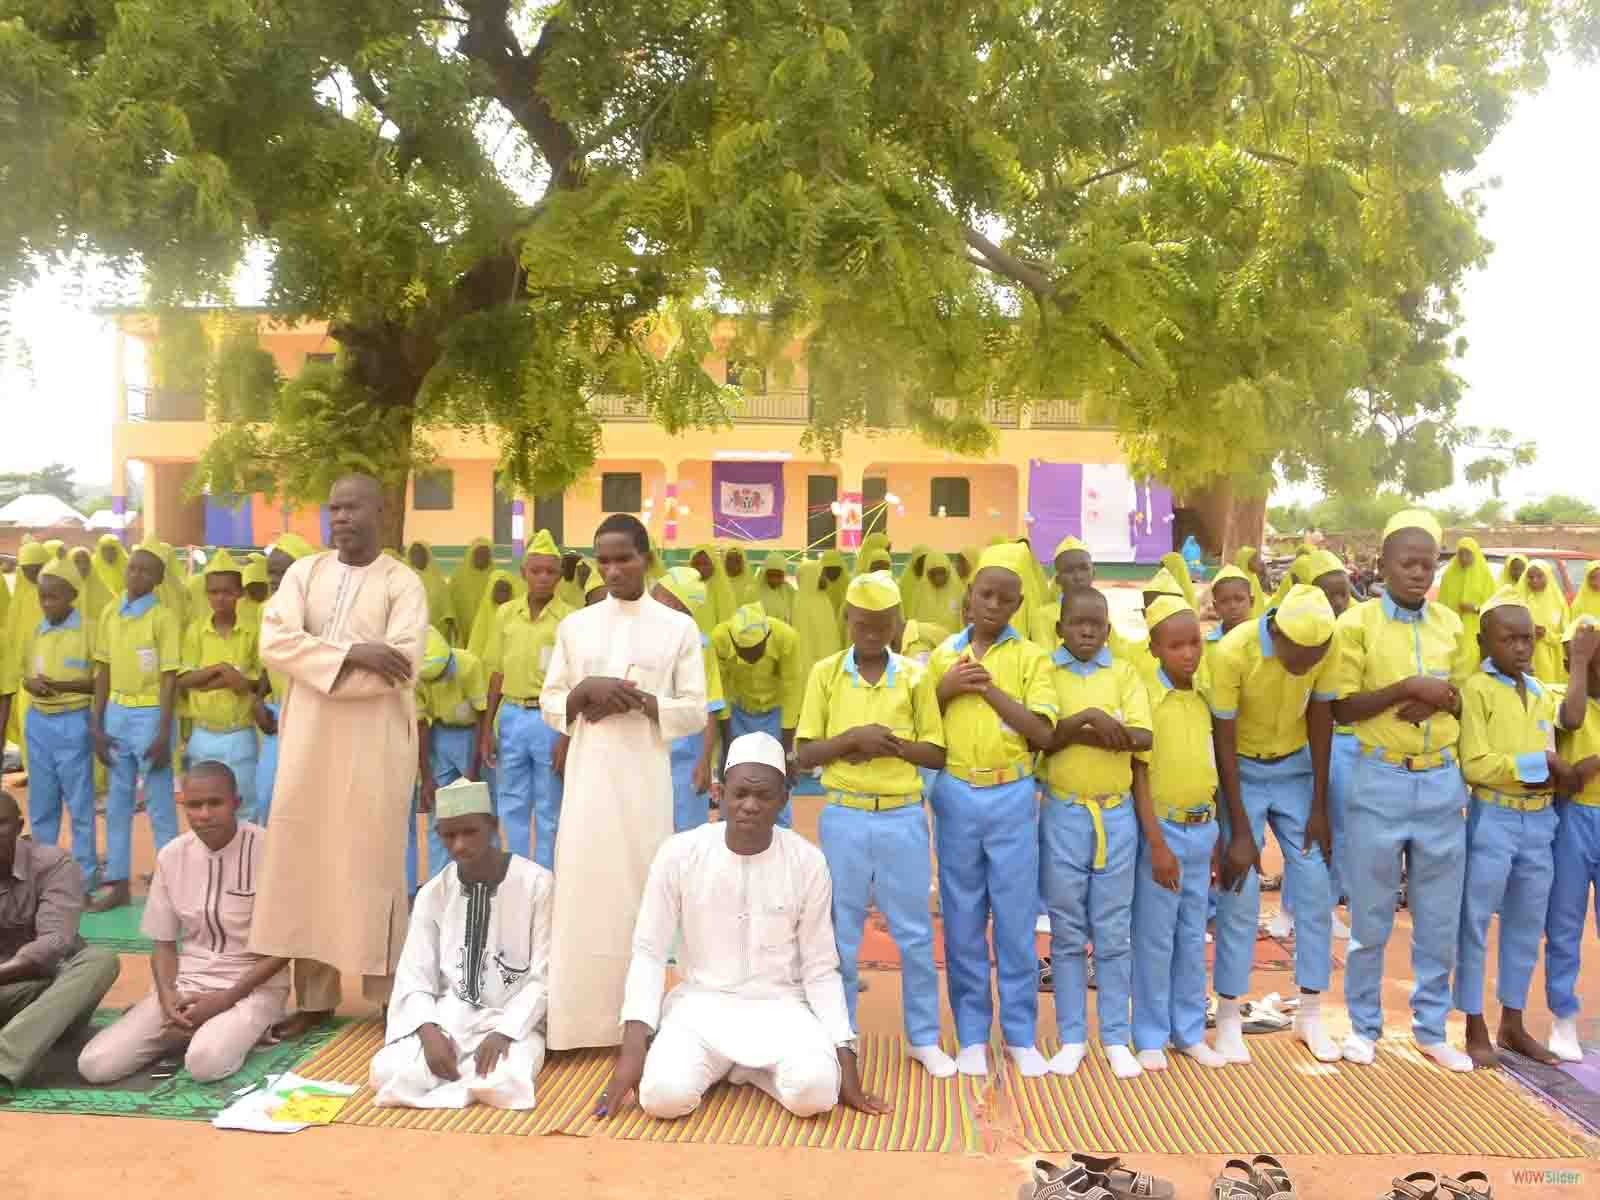 Students Performing Prayers